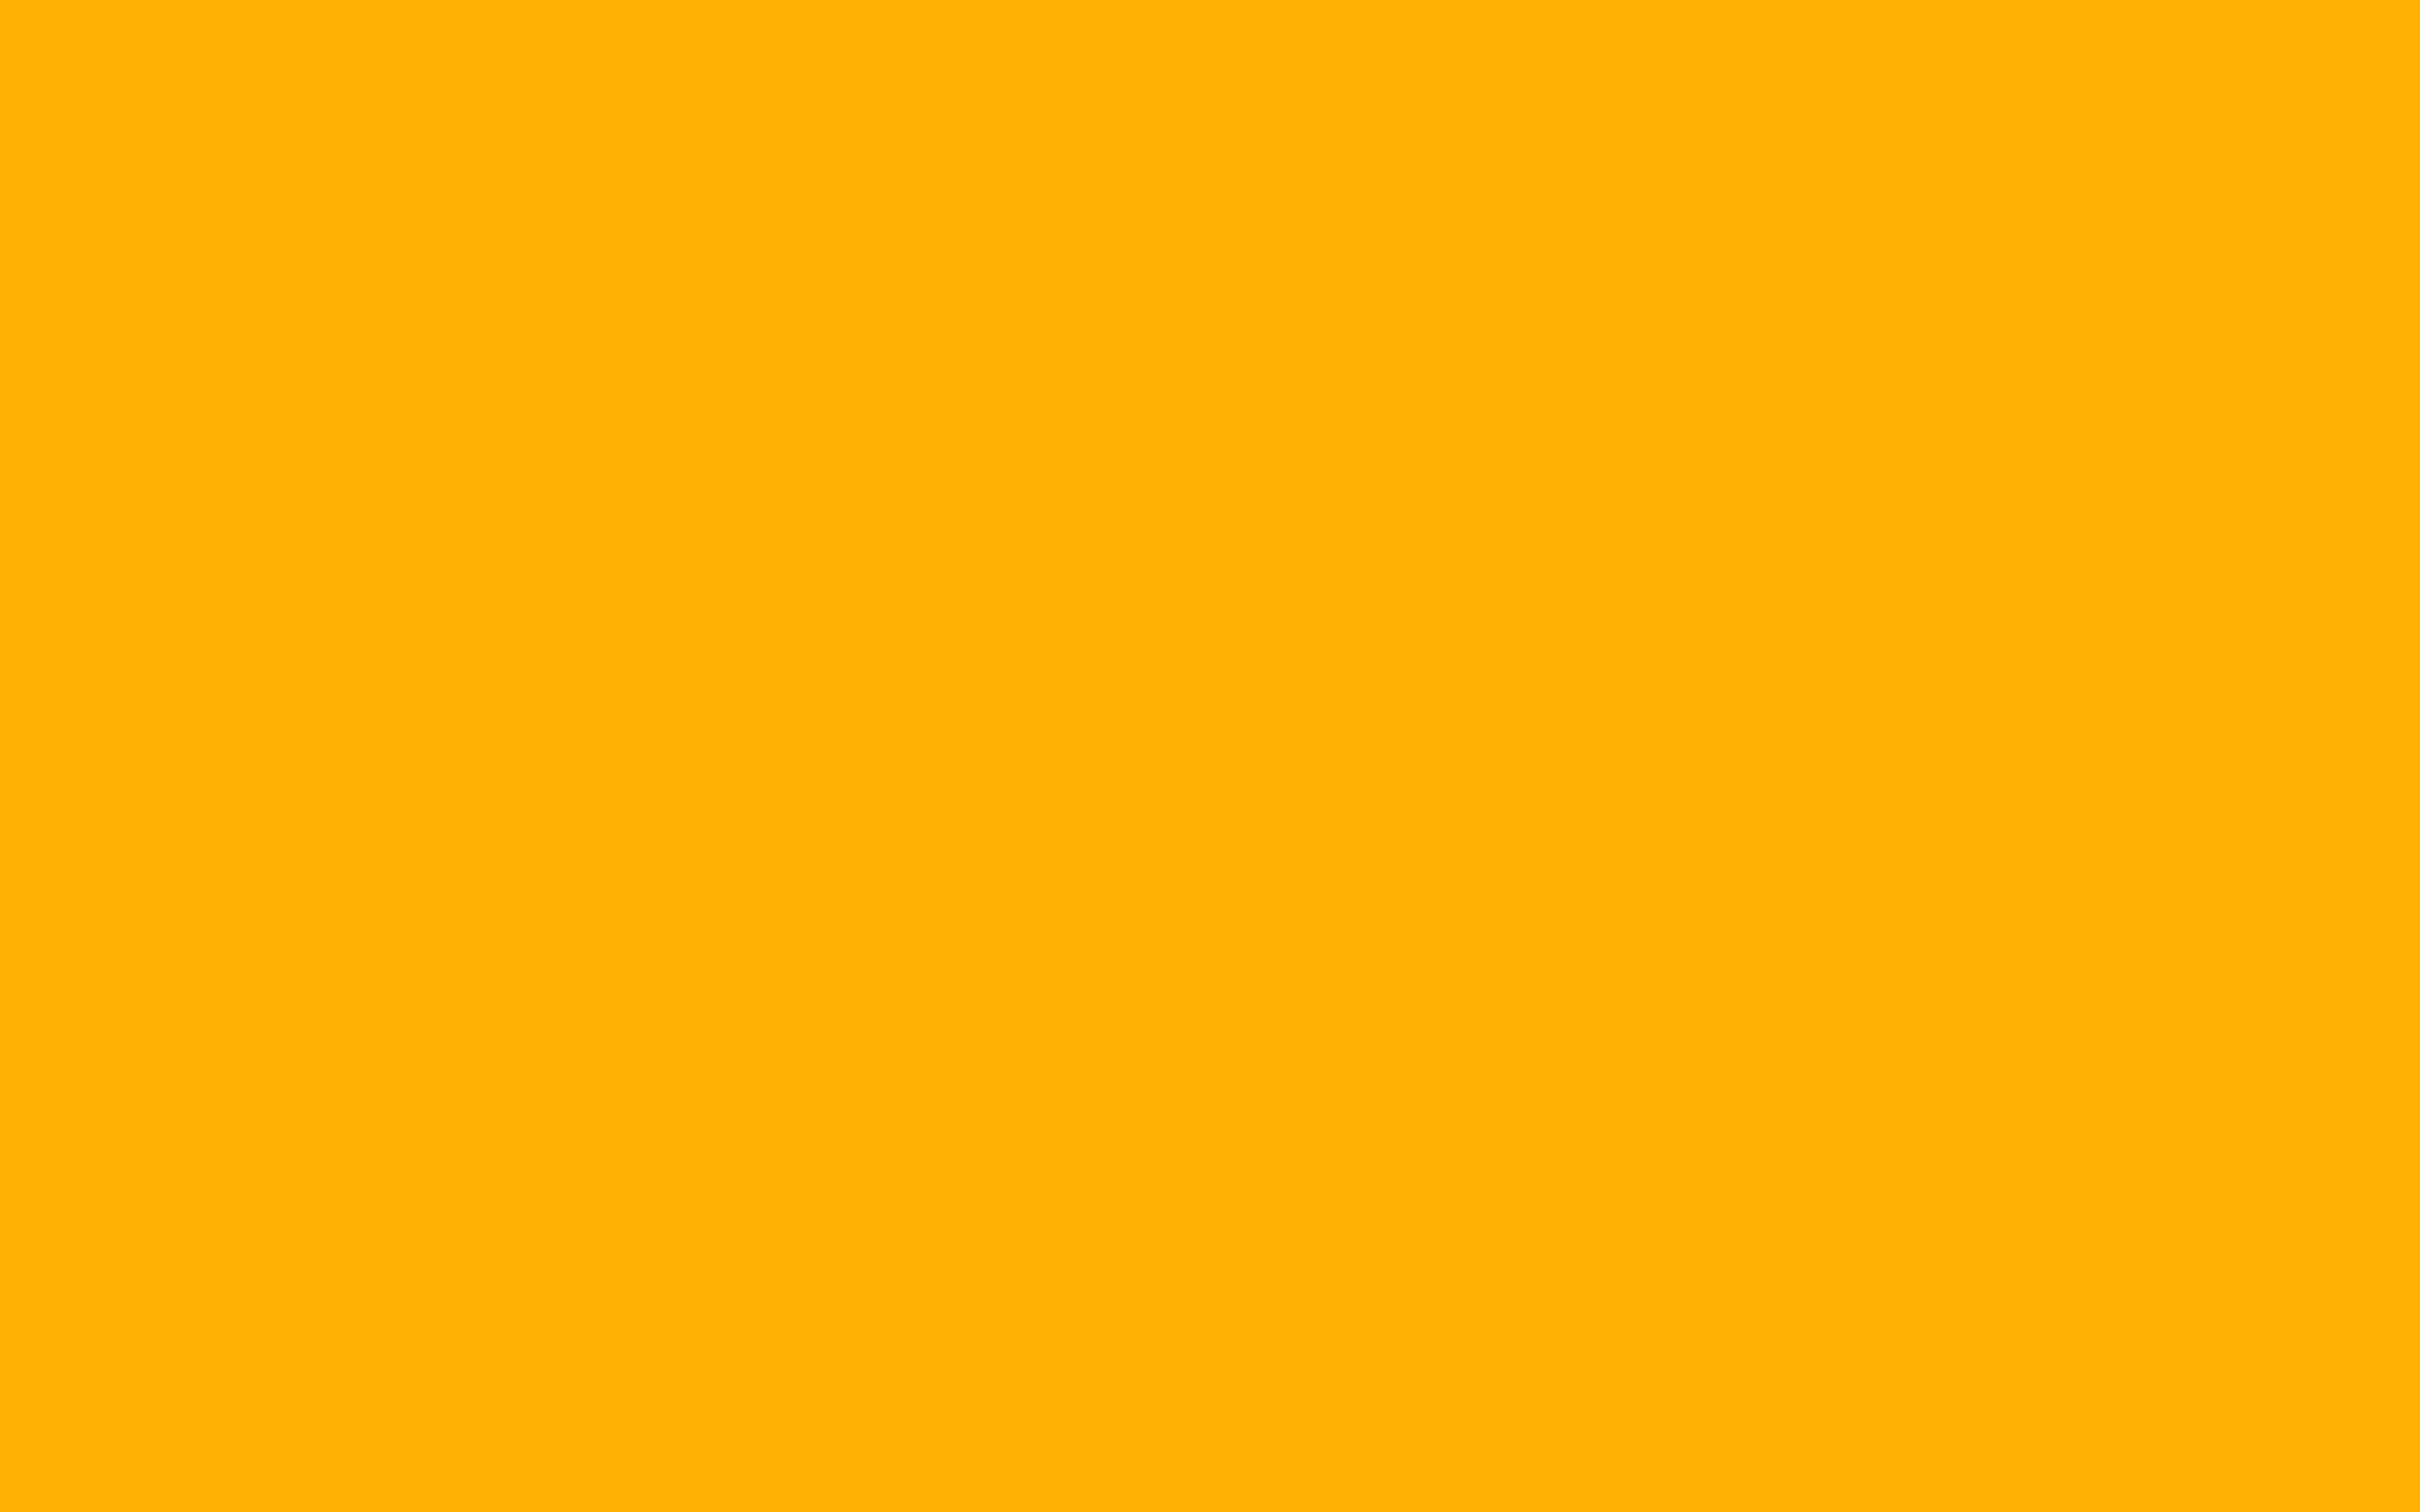 Gold solid color background view and download the below background 2880x1800